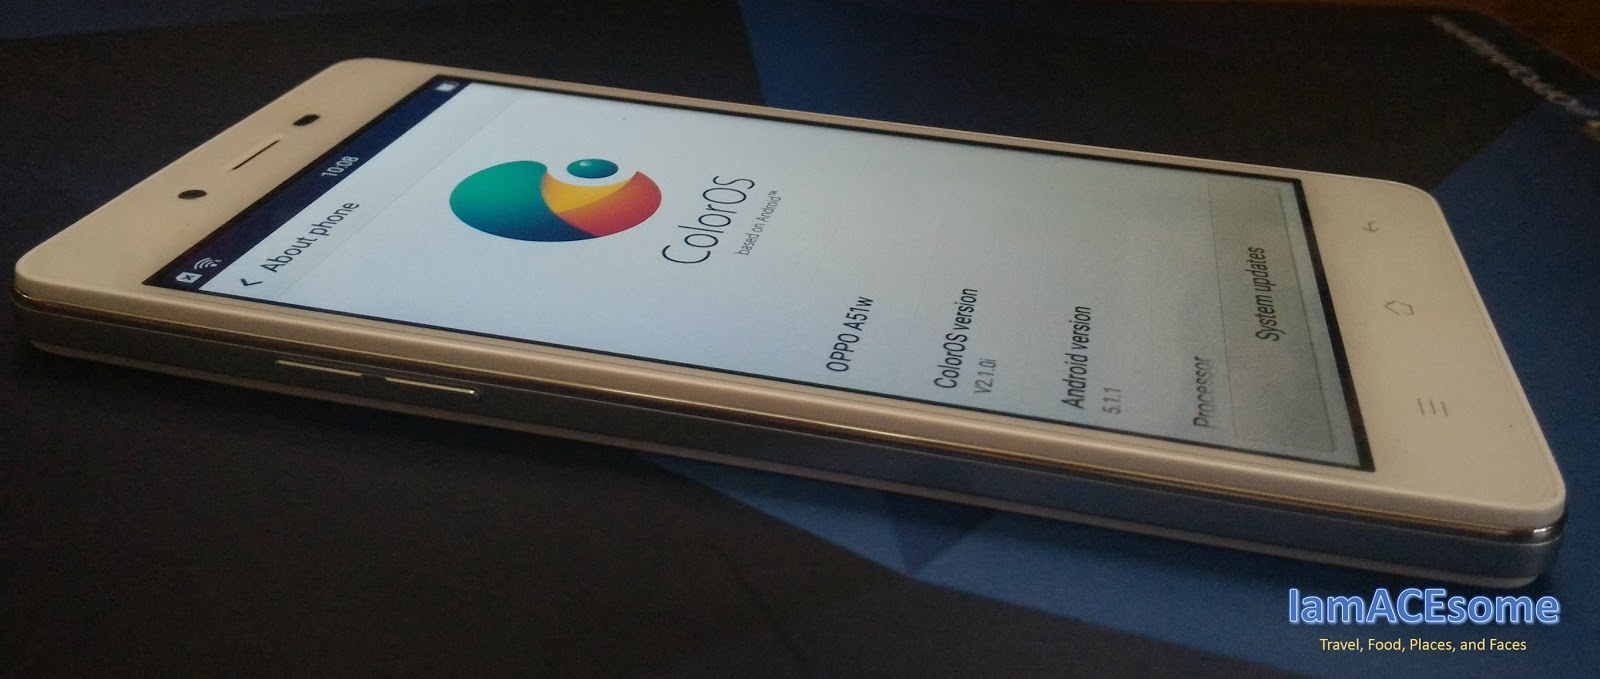 New Oppo Mirror 5 A Spark Of Brilliance Iamacesome 16gb Under The Hood Is Coloros 21 Latest Os